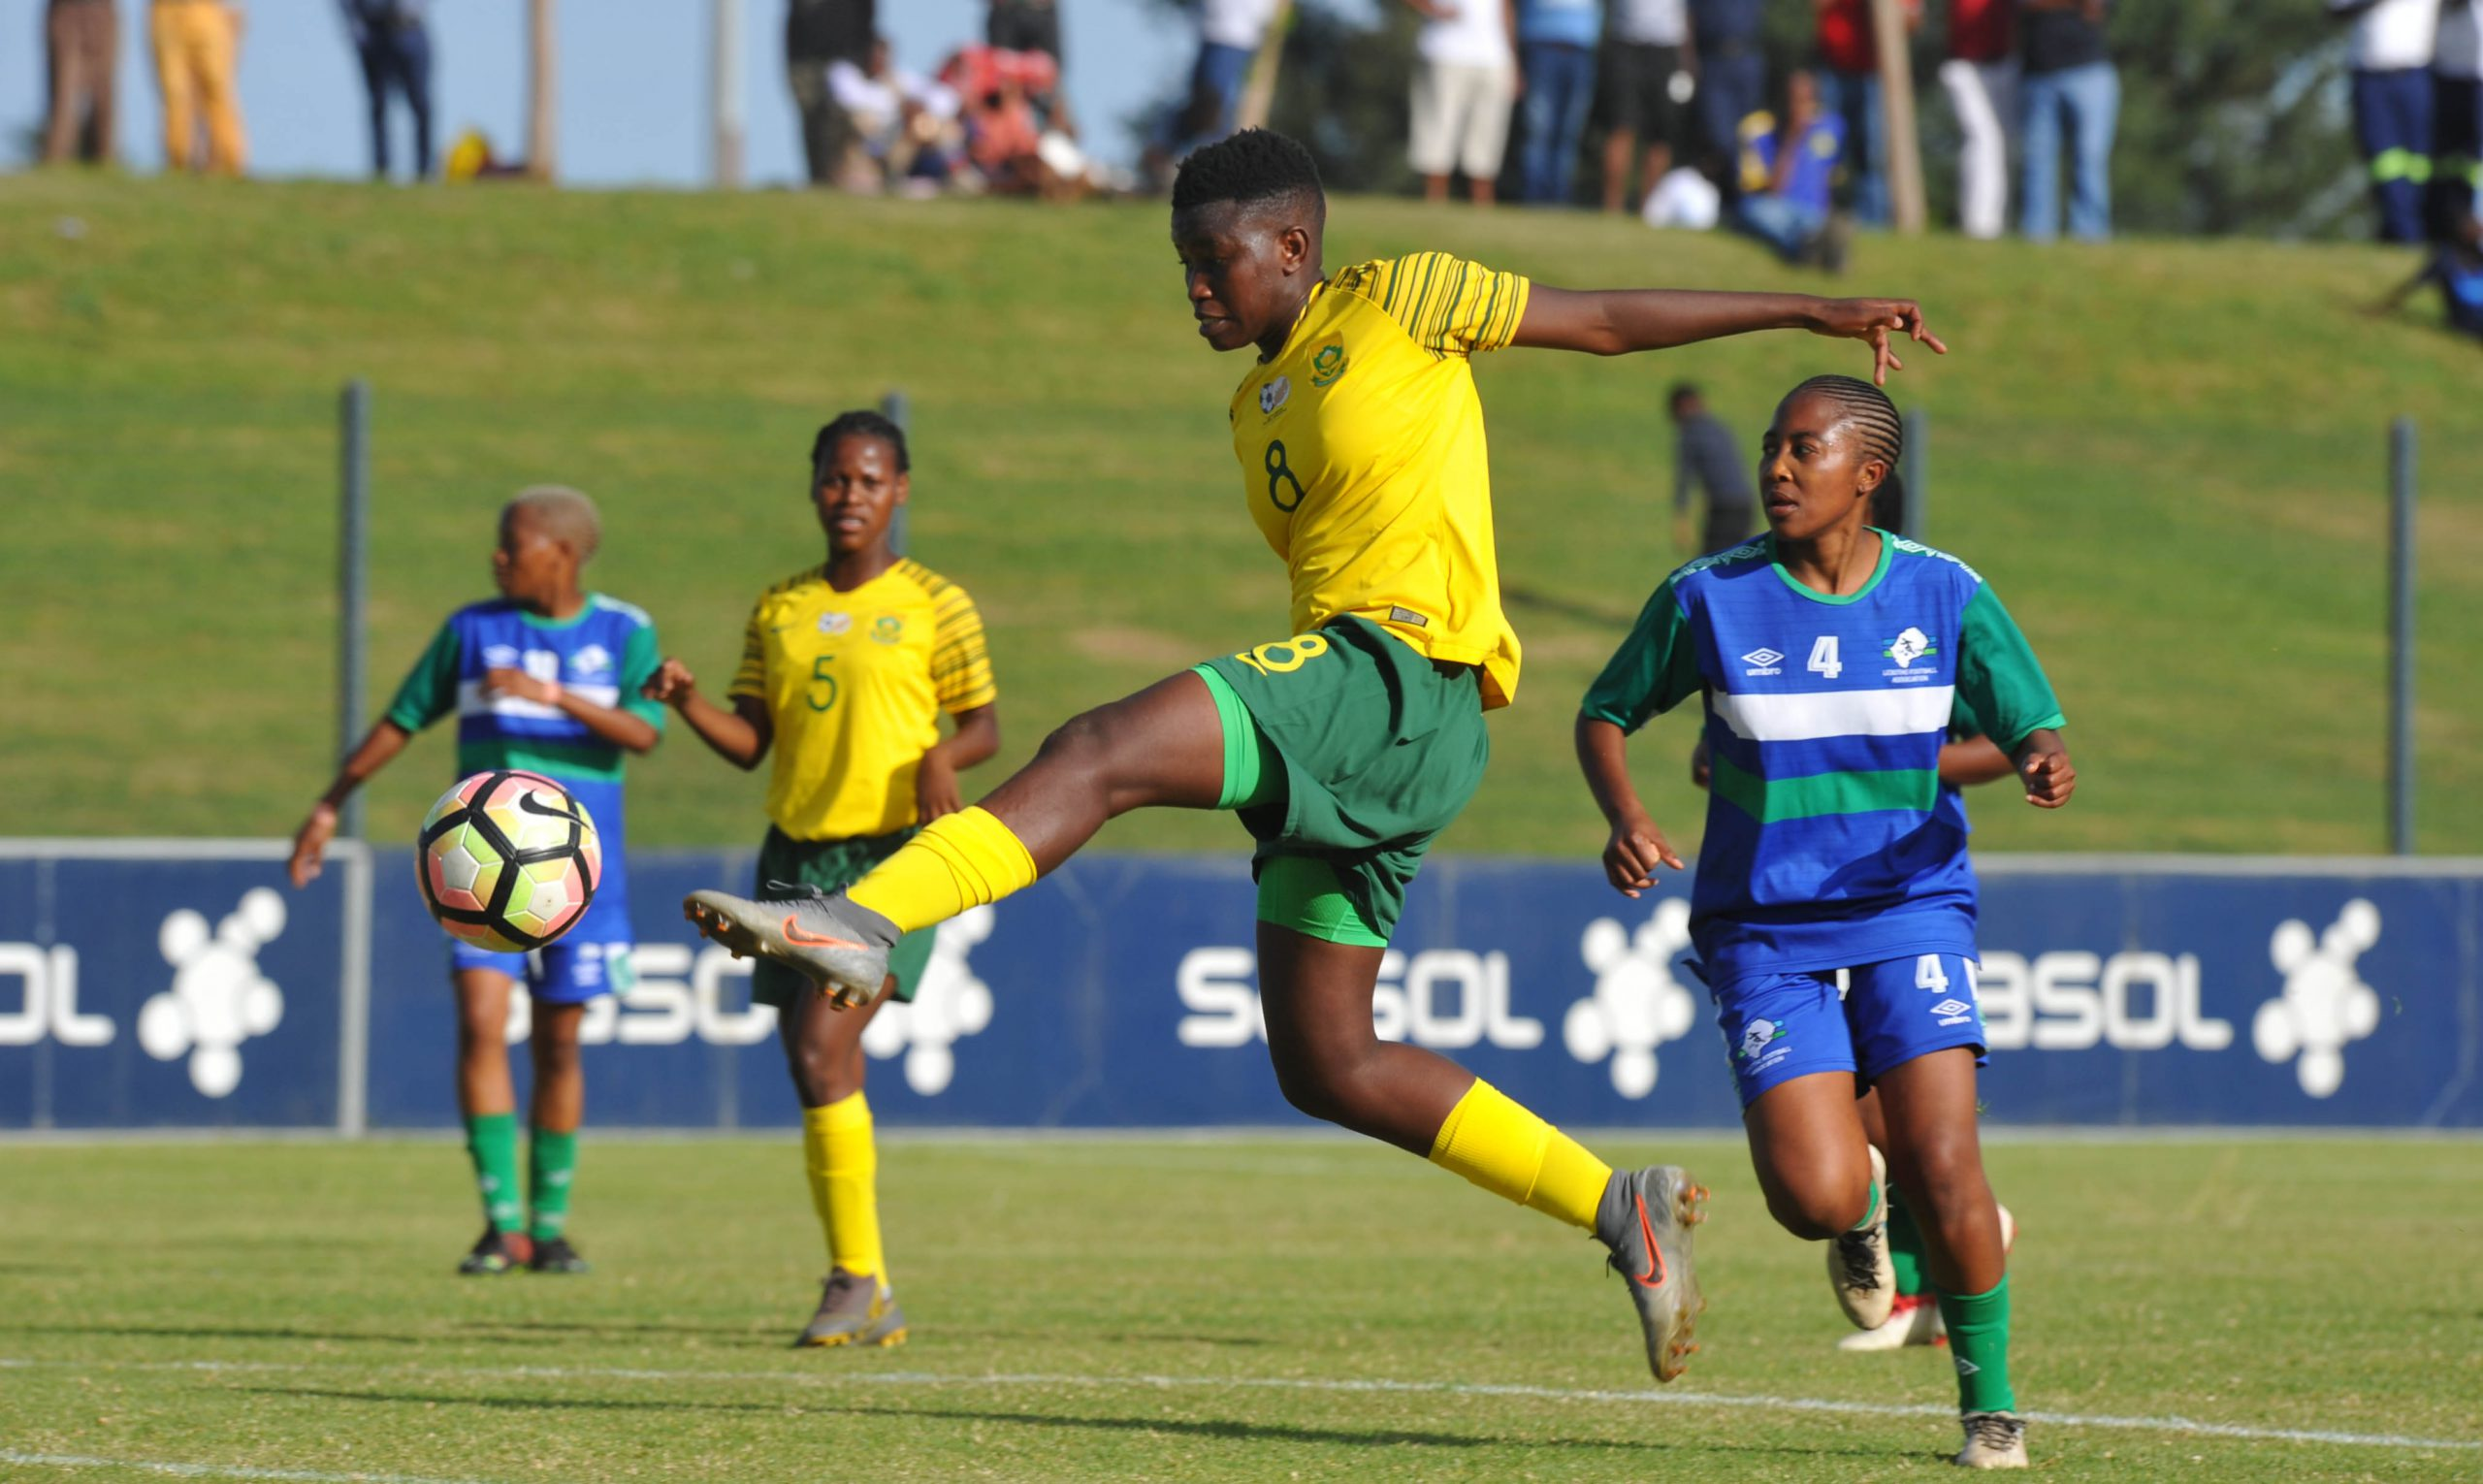 No change to Southern African teams in Fifa world rankings - Sports Leo